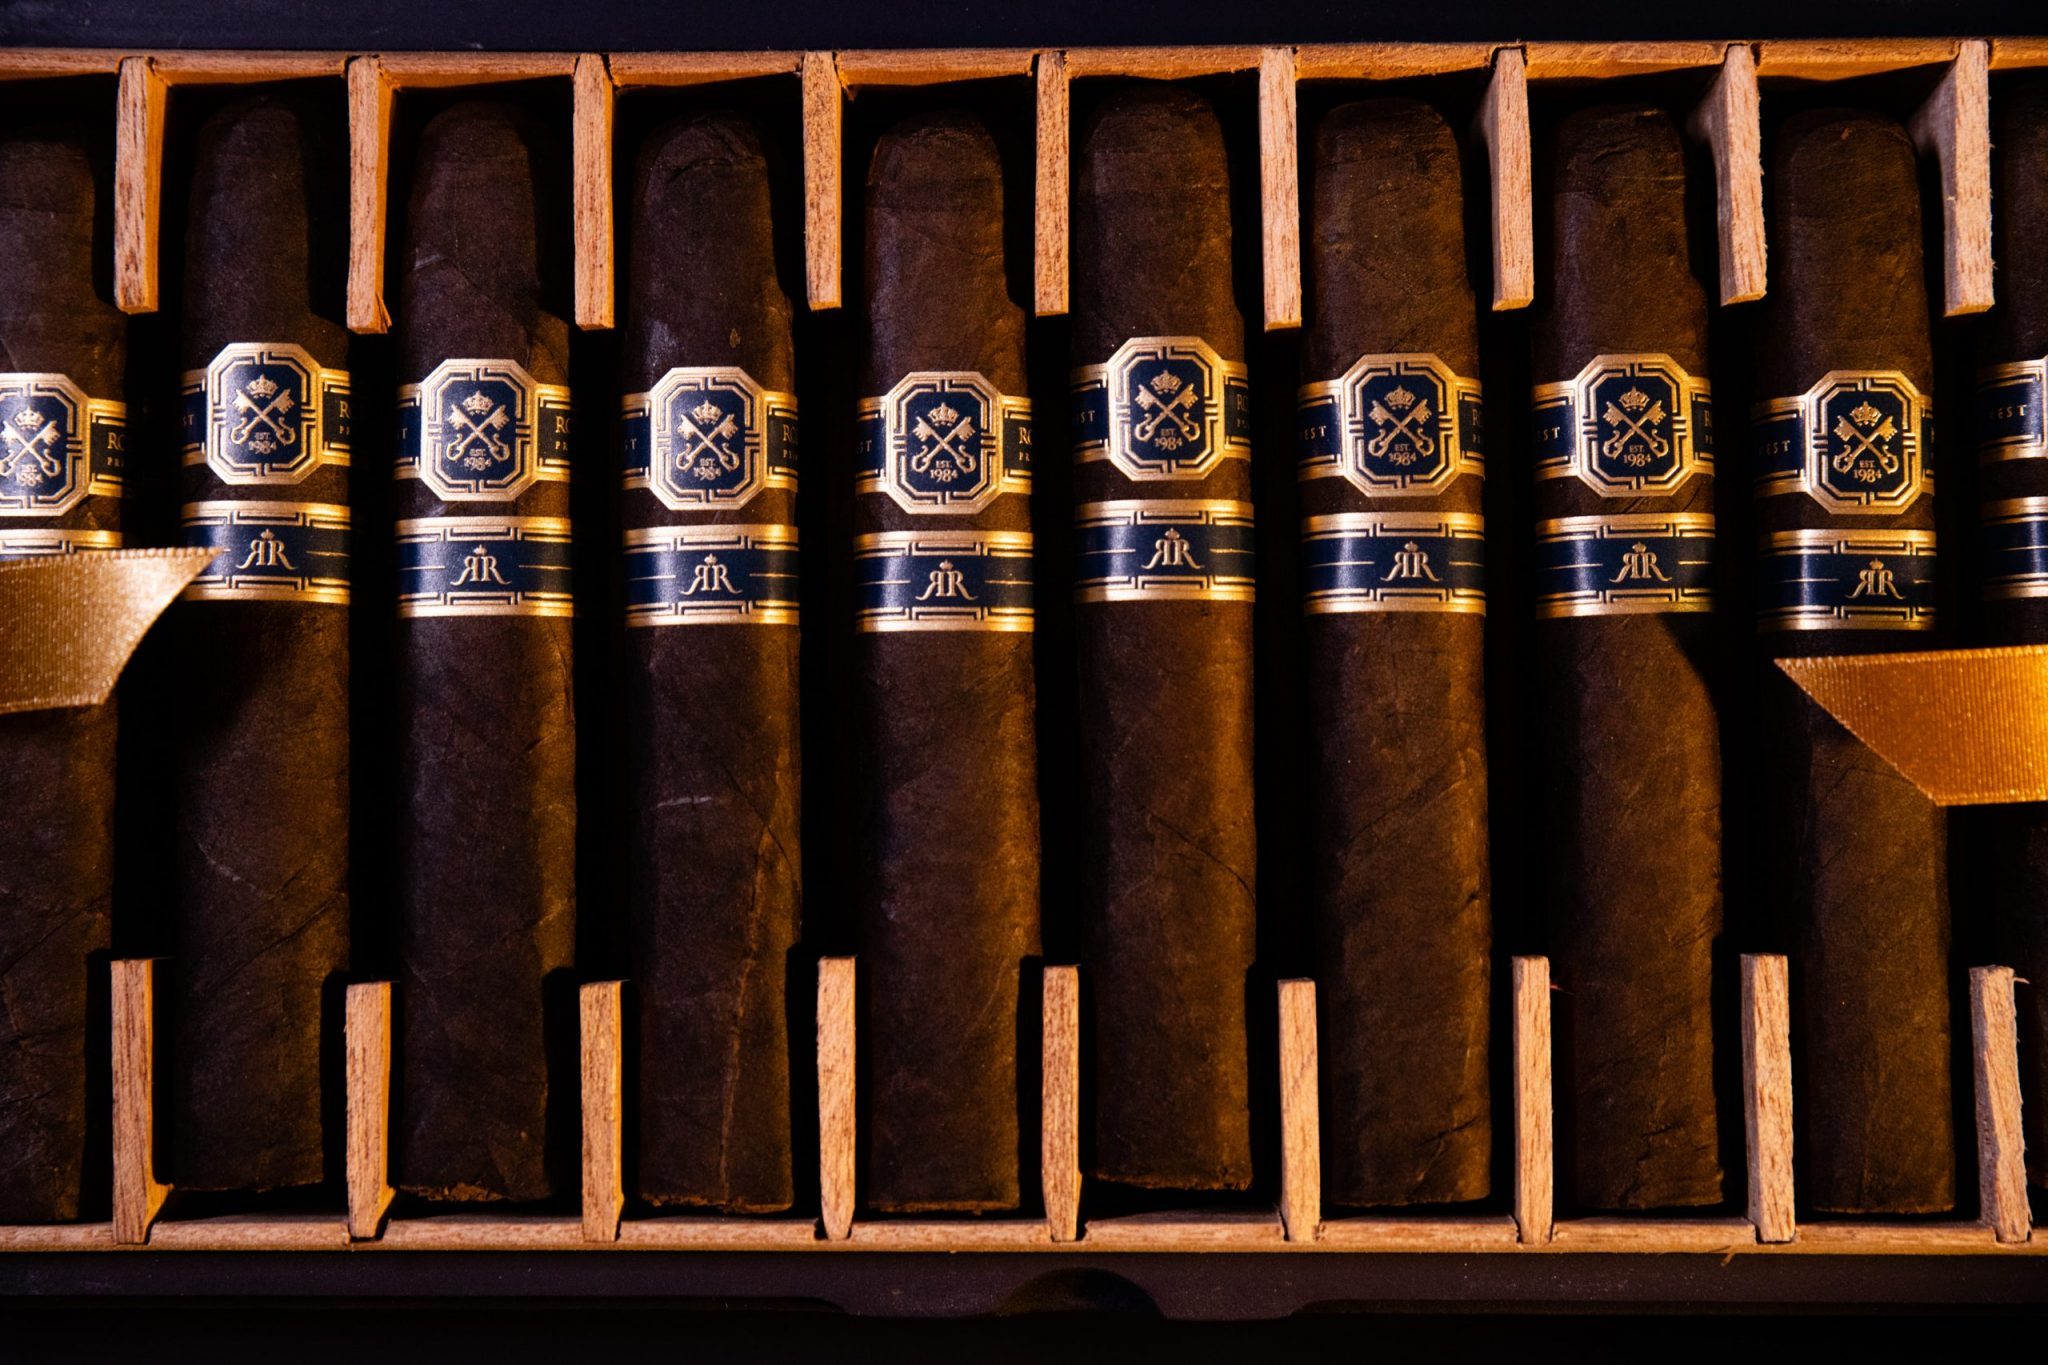 Cigars lined up for a profuct photoshoot